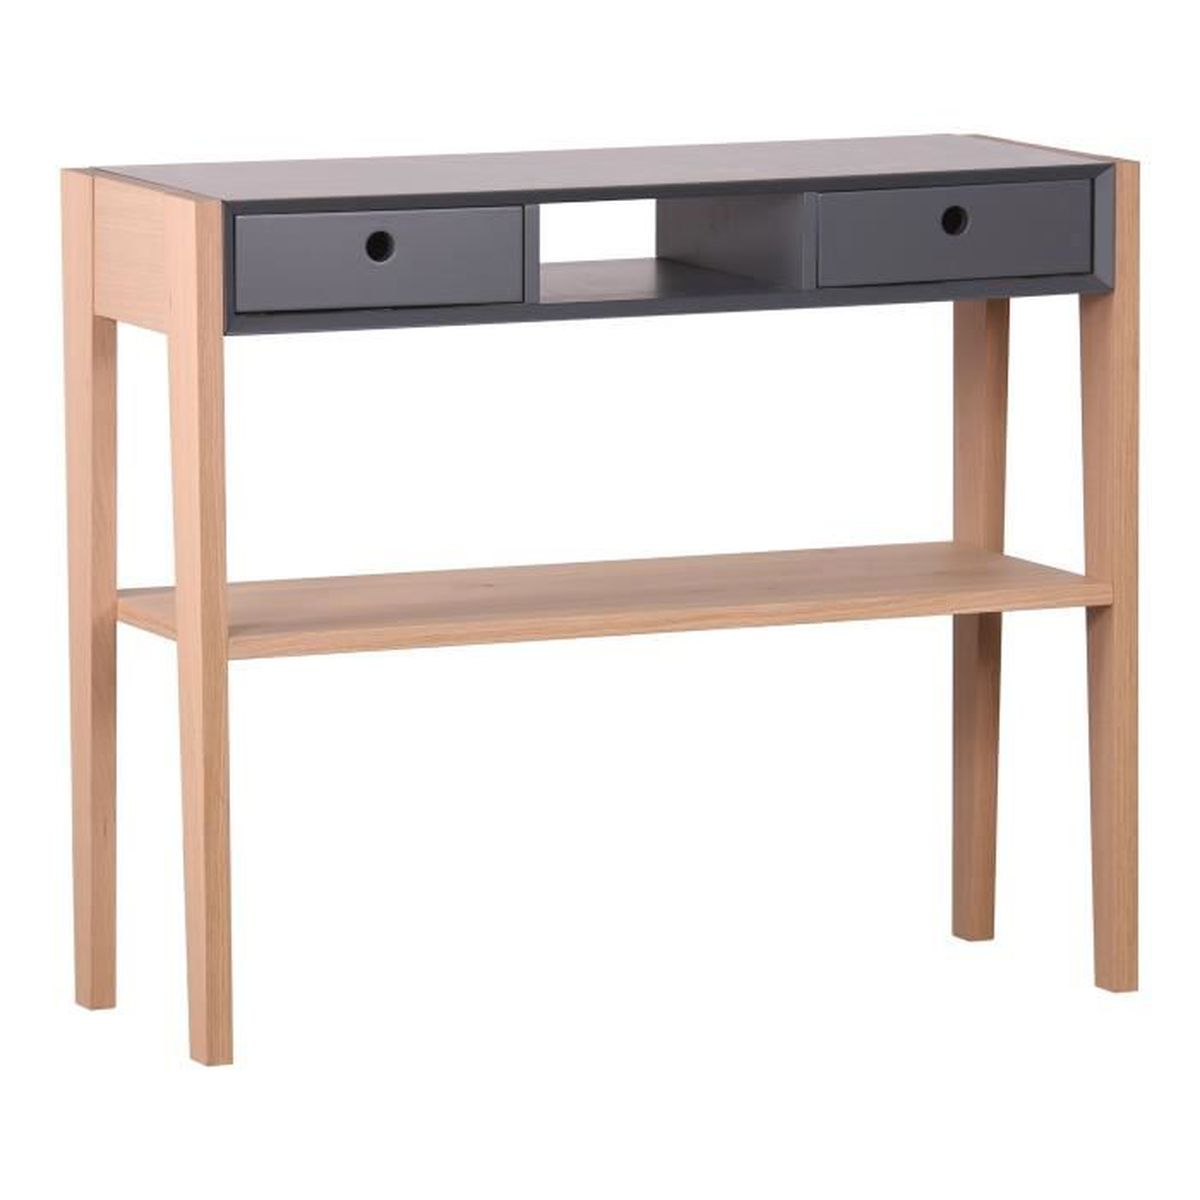 console avec tiroirs maison design. Black Bedroom Furniture Sets. Home Design Ideas